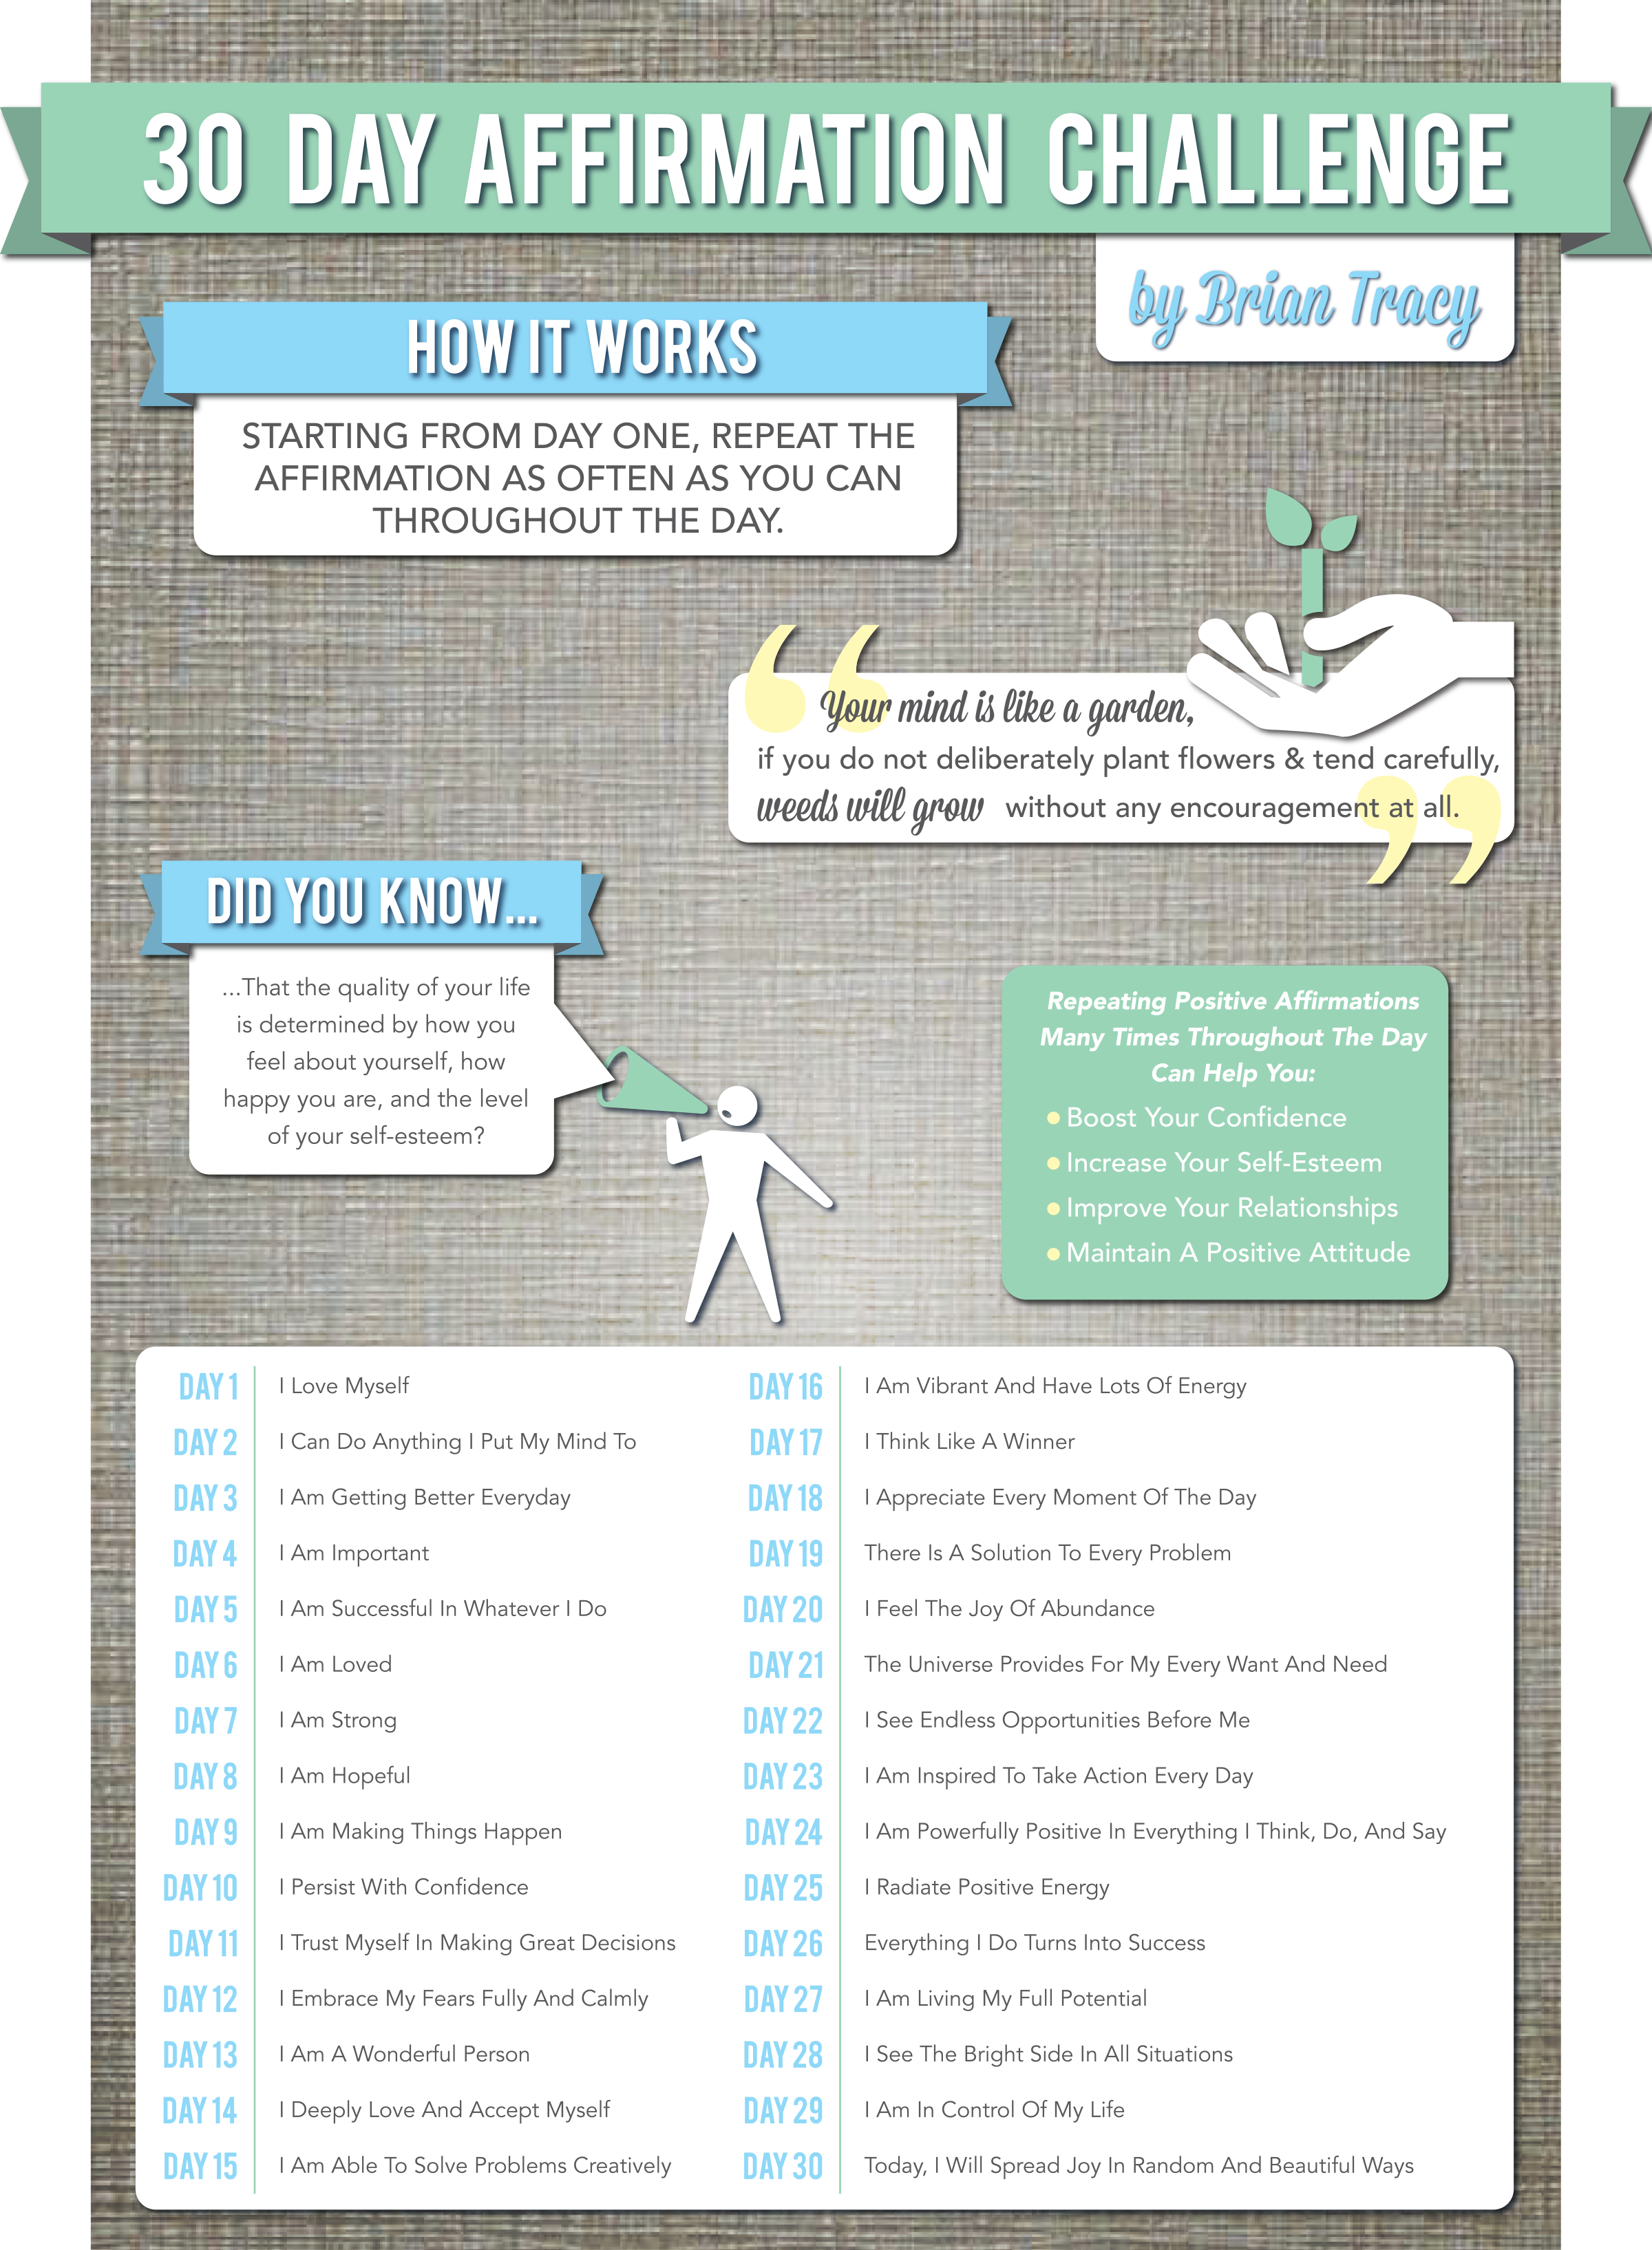 Brian Tracy's 30 day affirmation challenge. Read all about it on www.wantforwellness.com, and make sure to check back on how I went through this challenge!